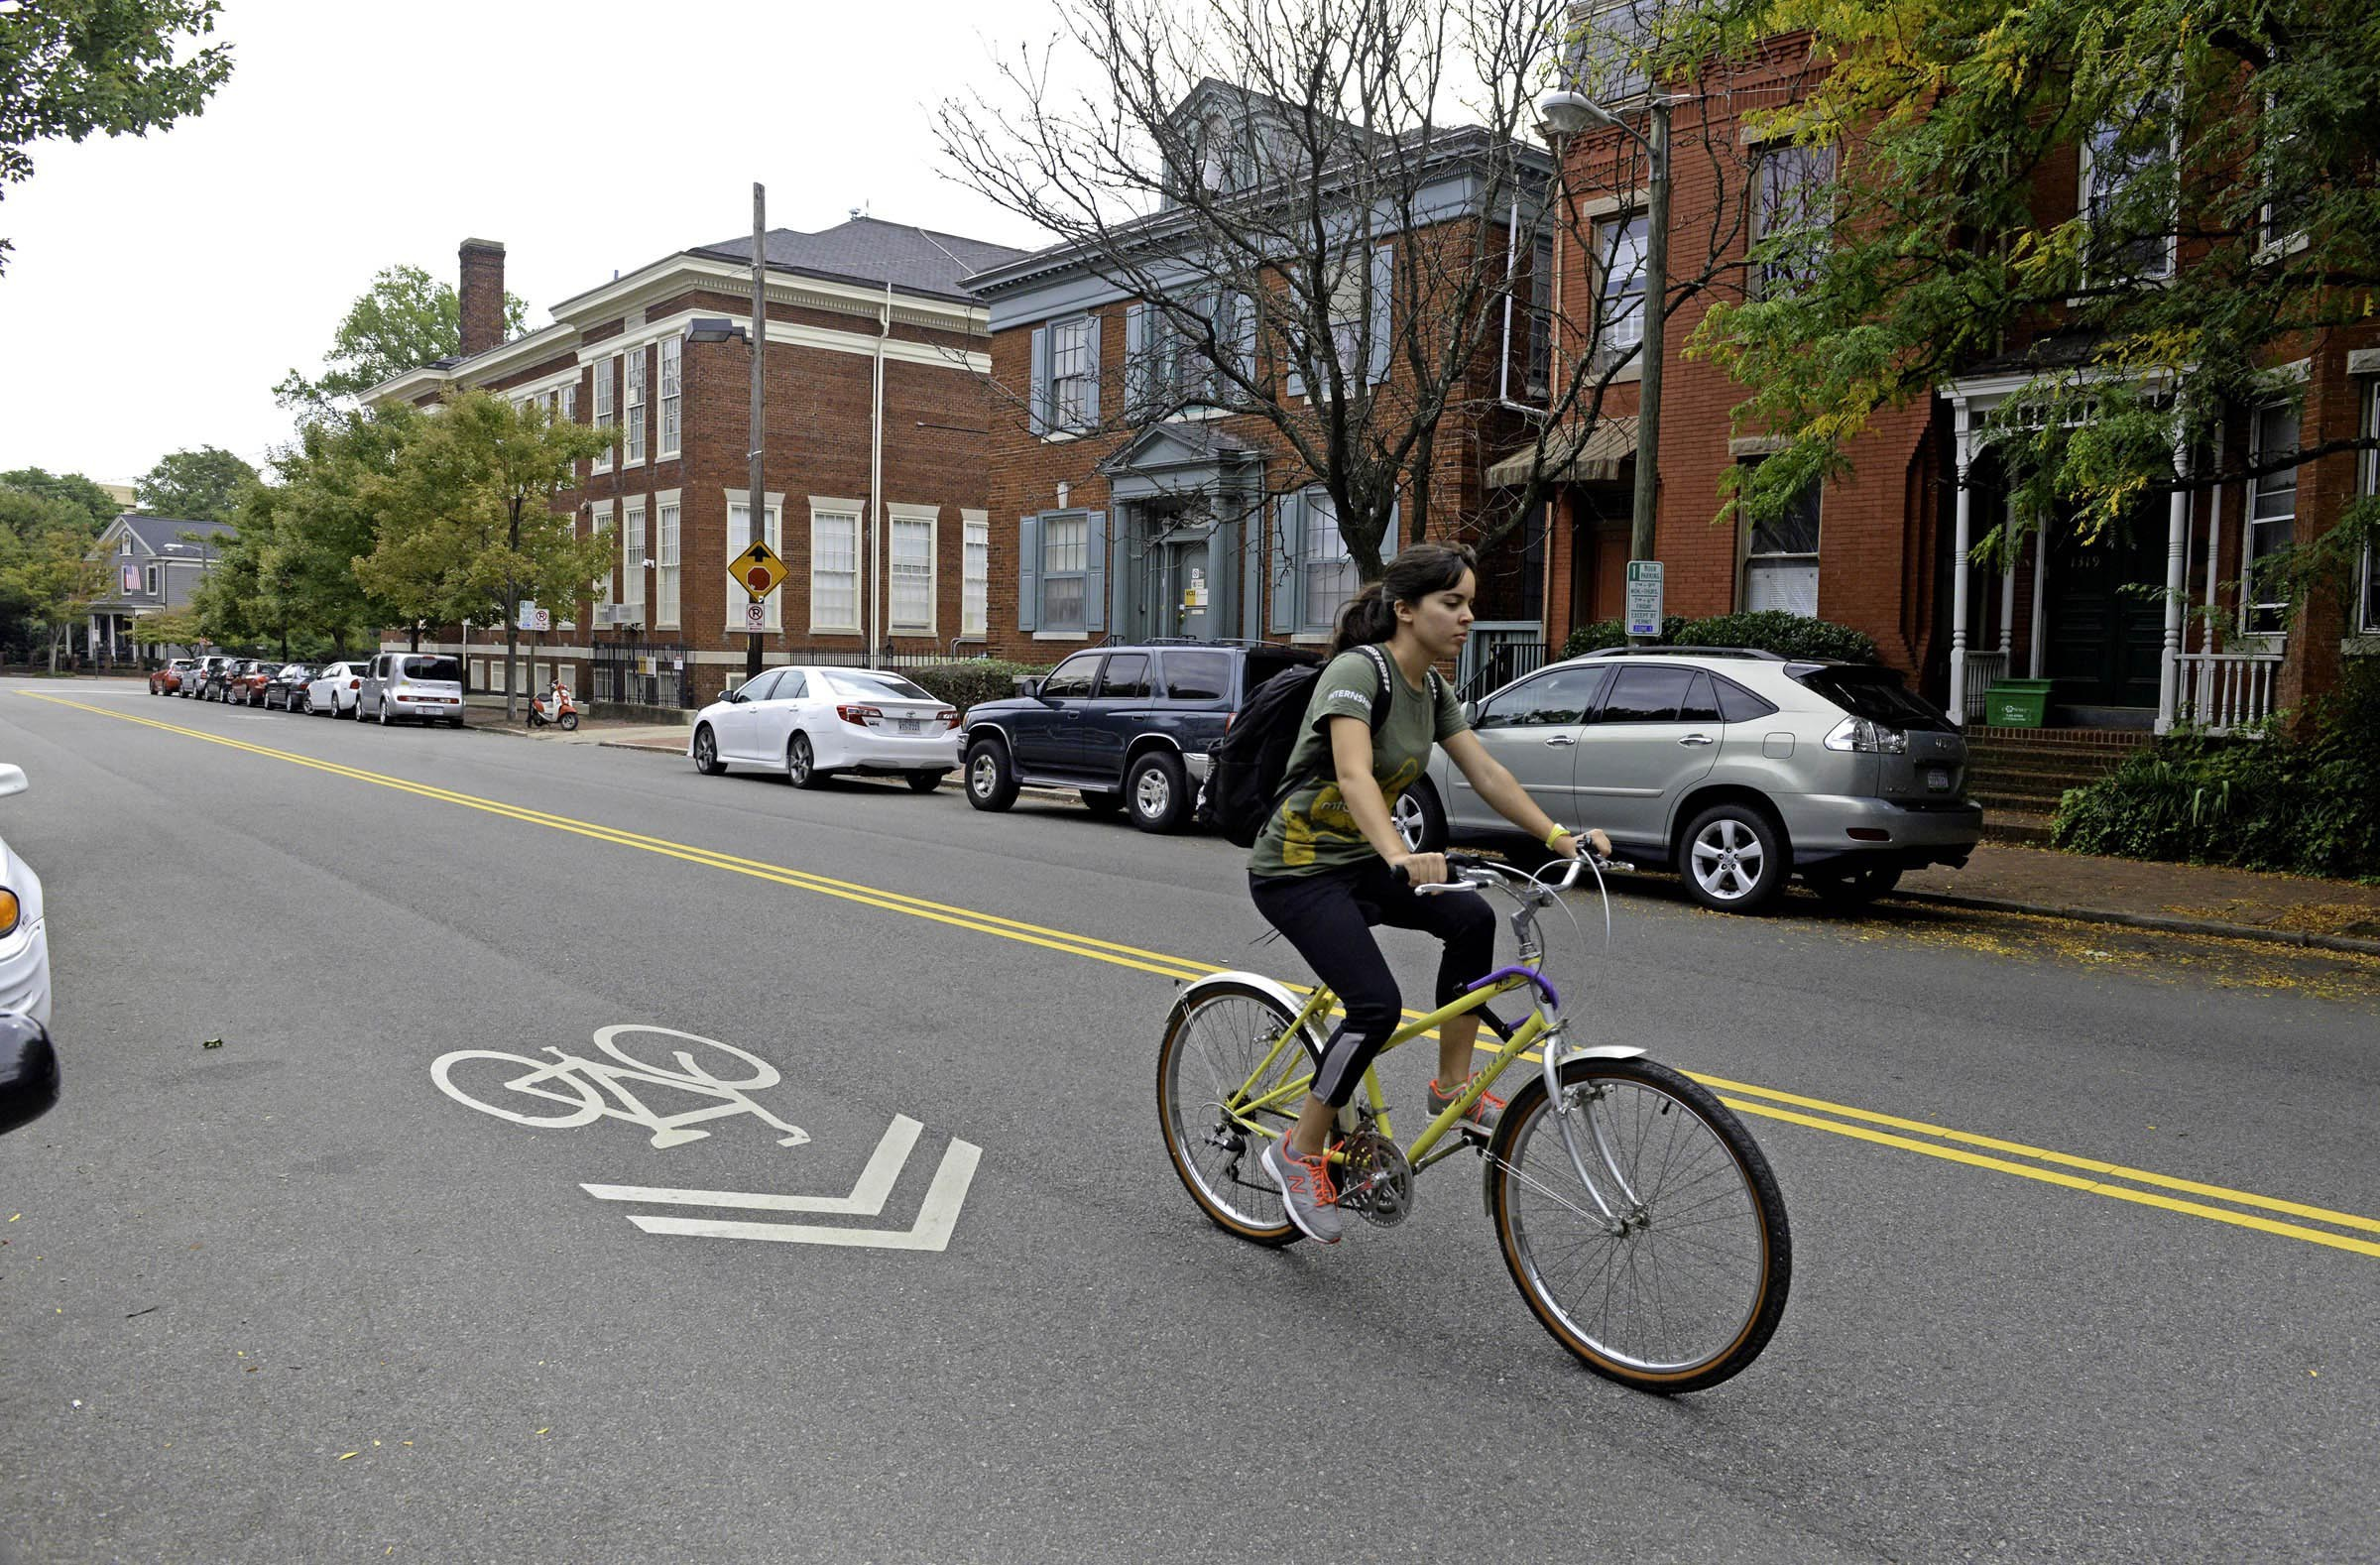 Sharrows, like these along Floyd Avenue, have been visible signs of a strong bike presence. The recent international races have invigorated the cycling community. - SCOTT ELMQUIST